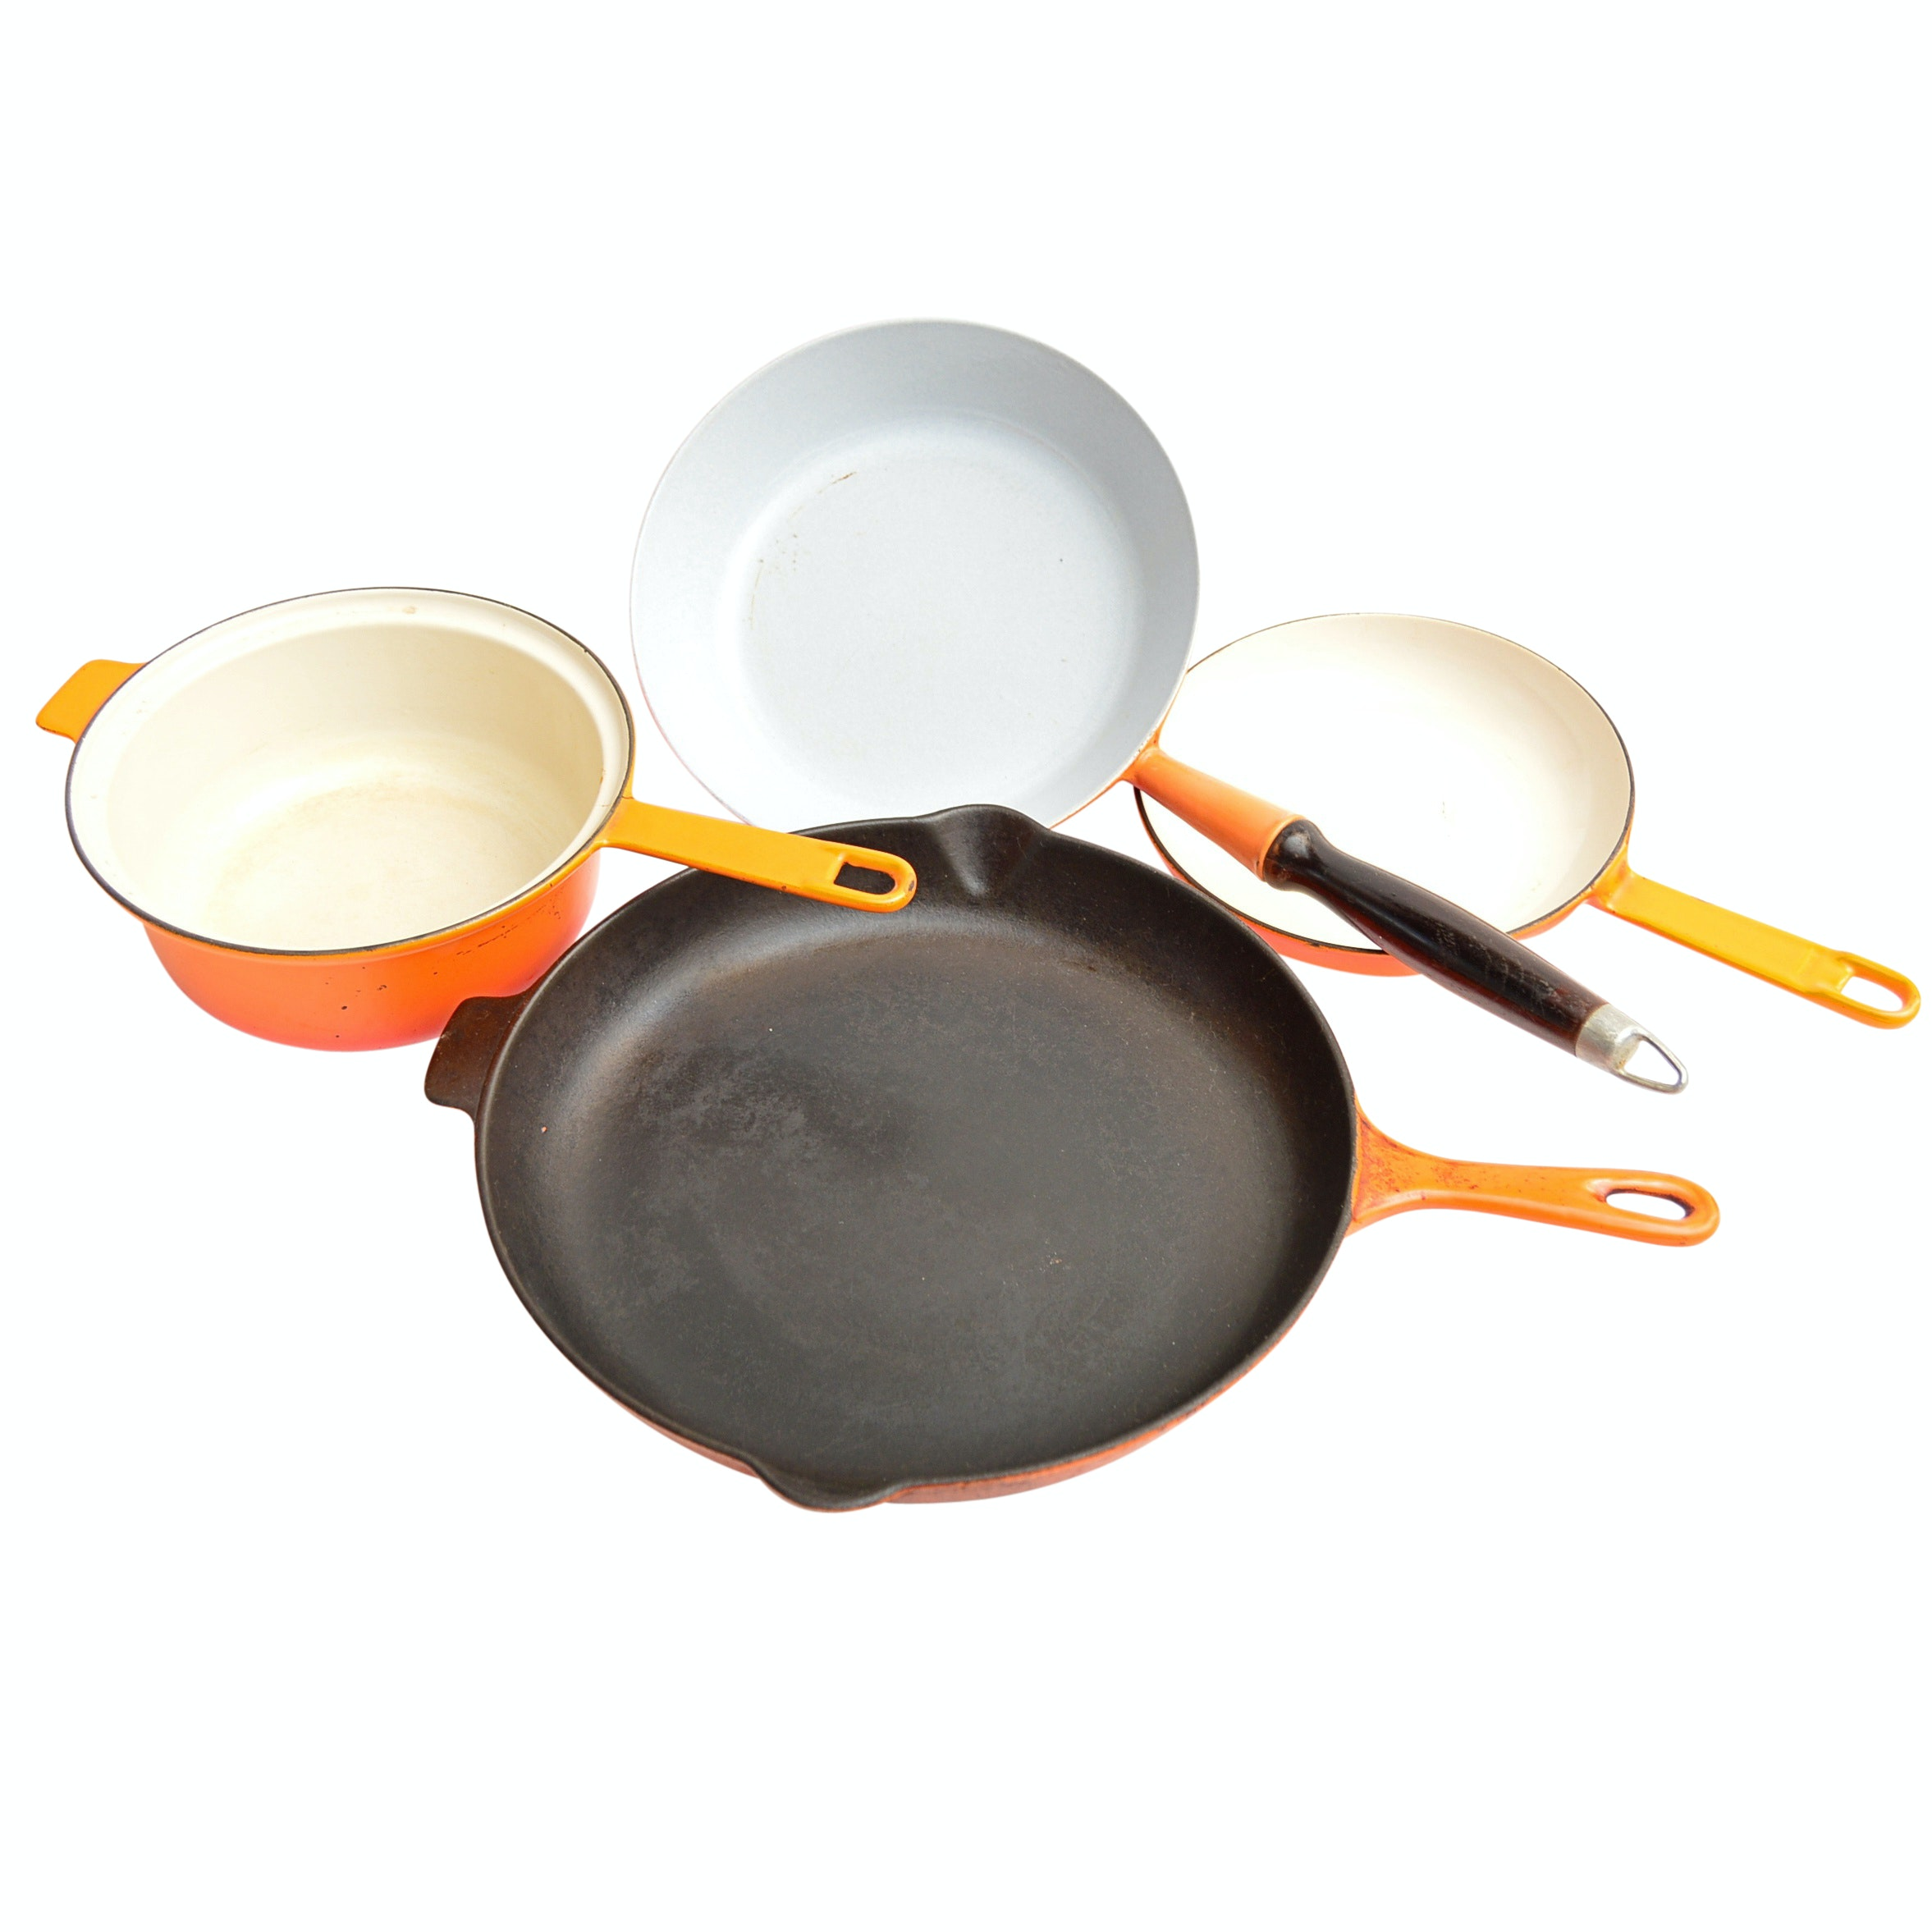 Enamel Cookware with Le Creuset